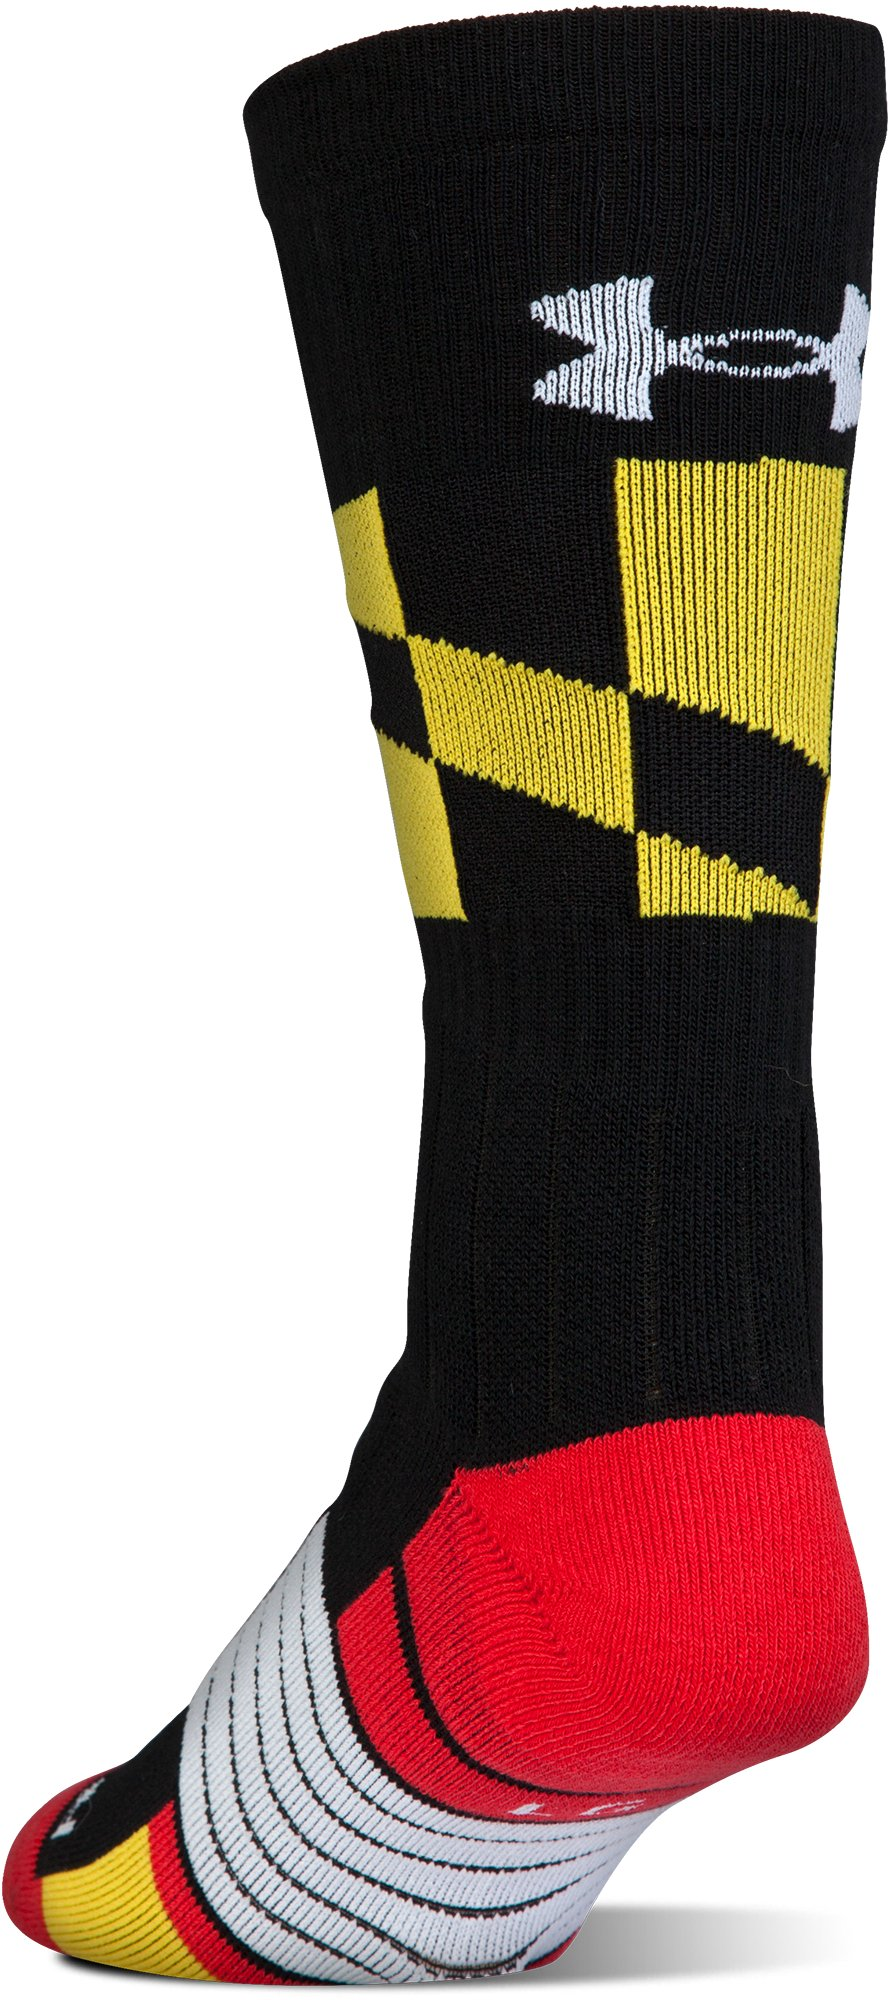 UA Unrivaled Maryland Crew Socks, Black